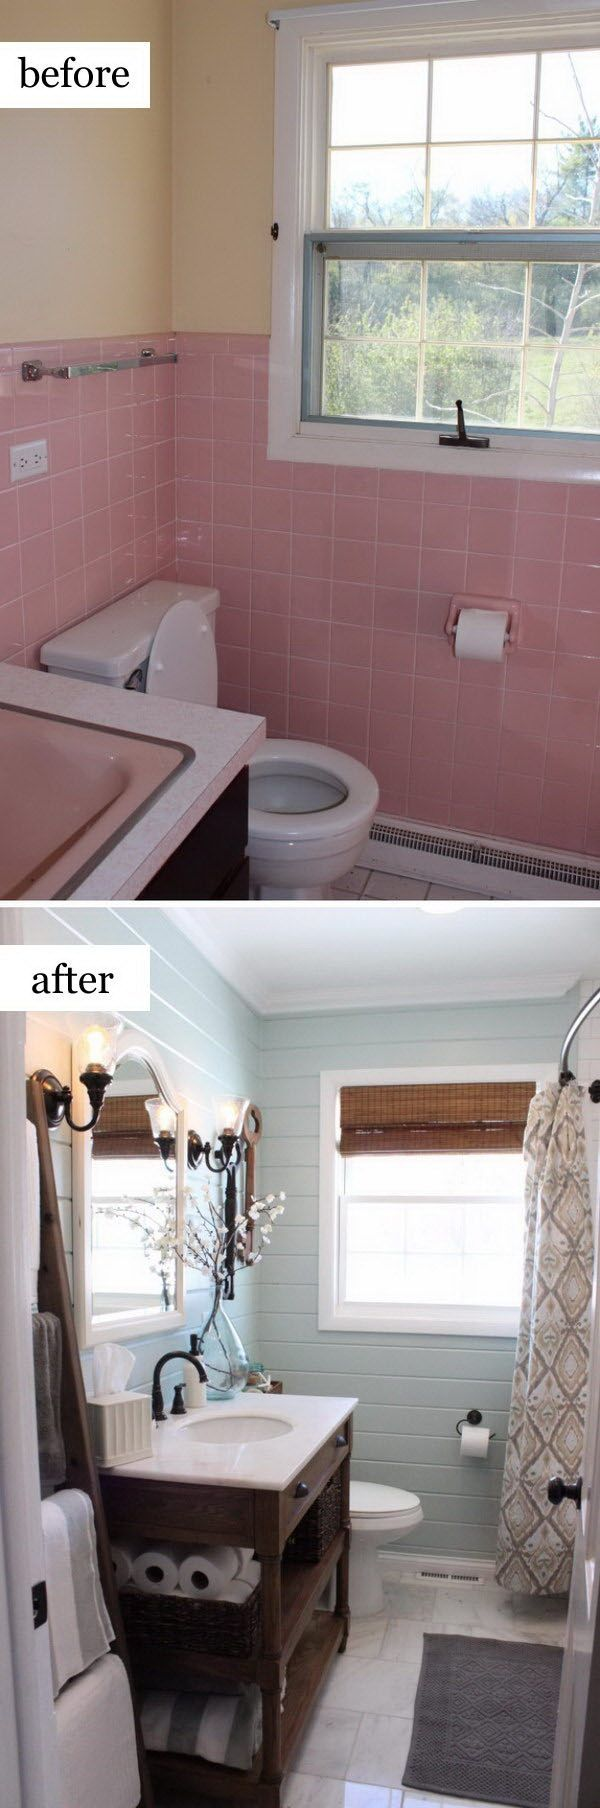 Remodeling A Bathroom Diy best 25+ diy bathroom remodel ideas on pinterest | rust update